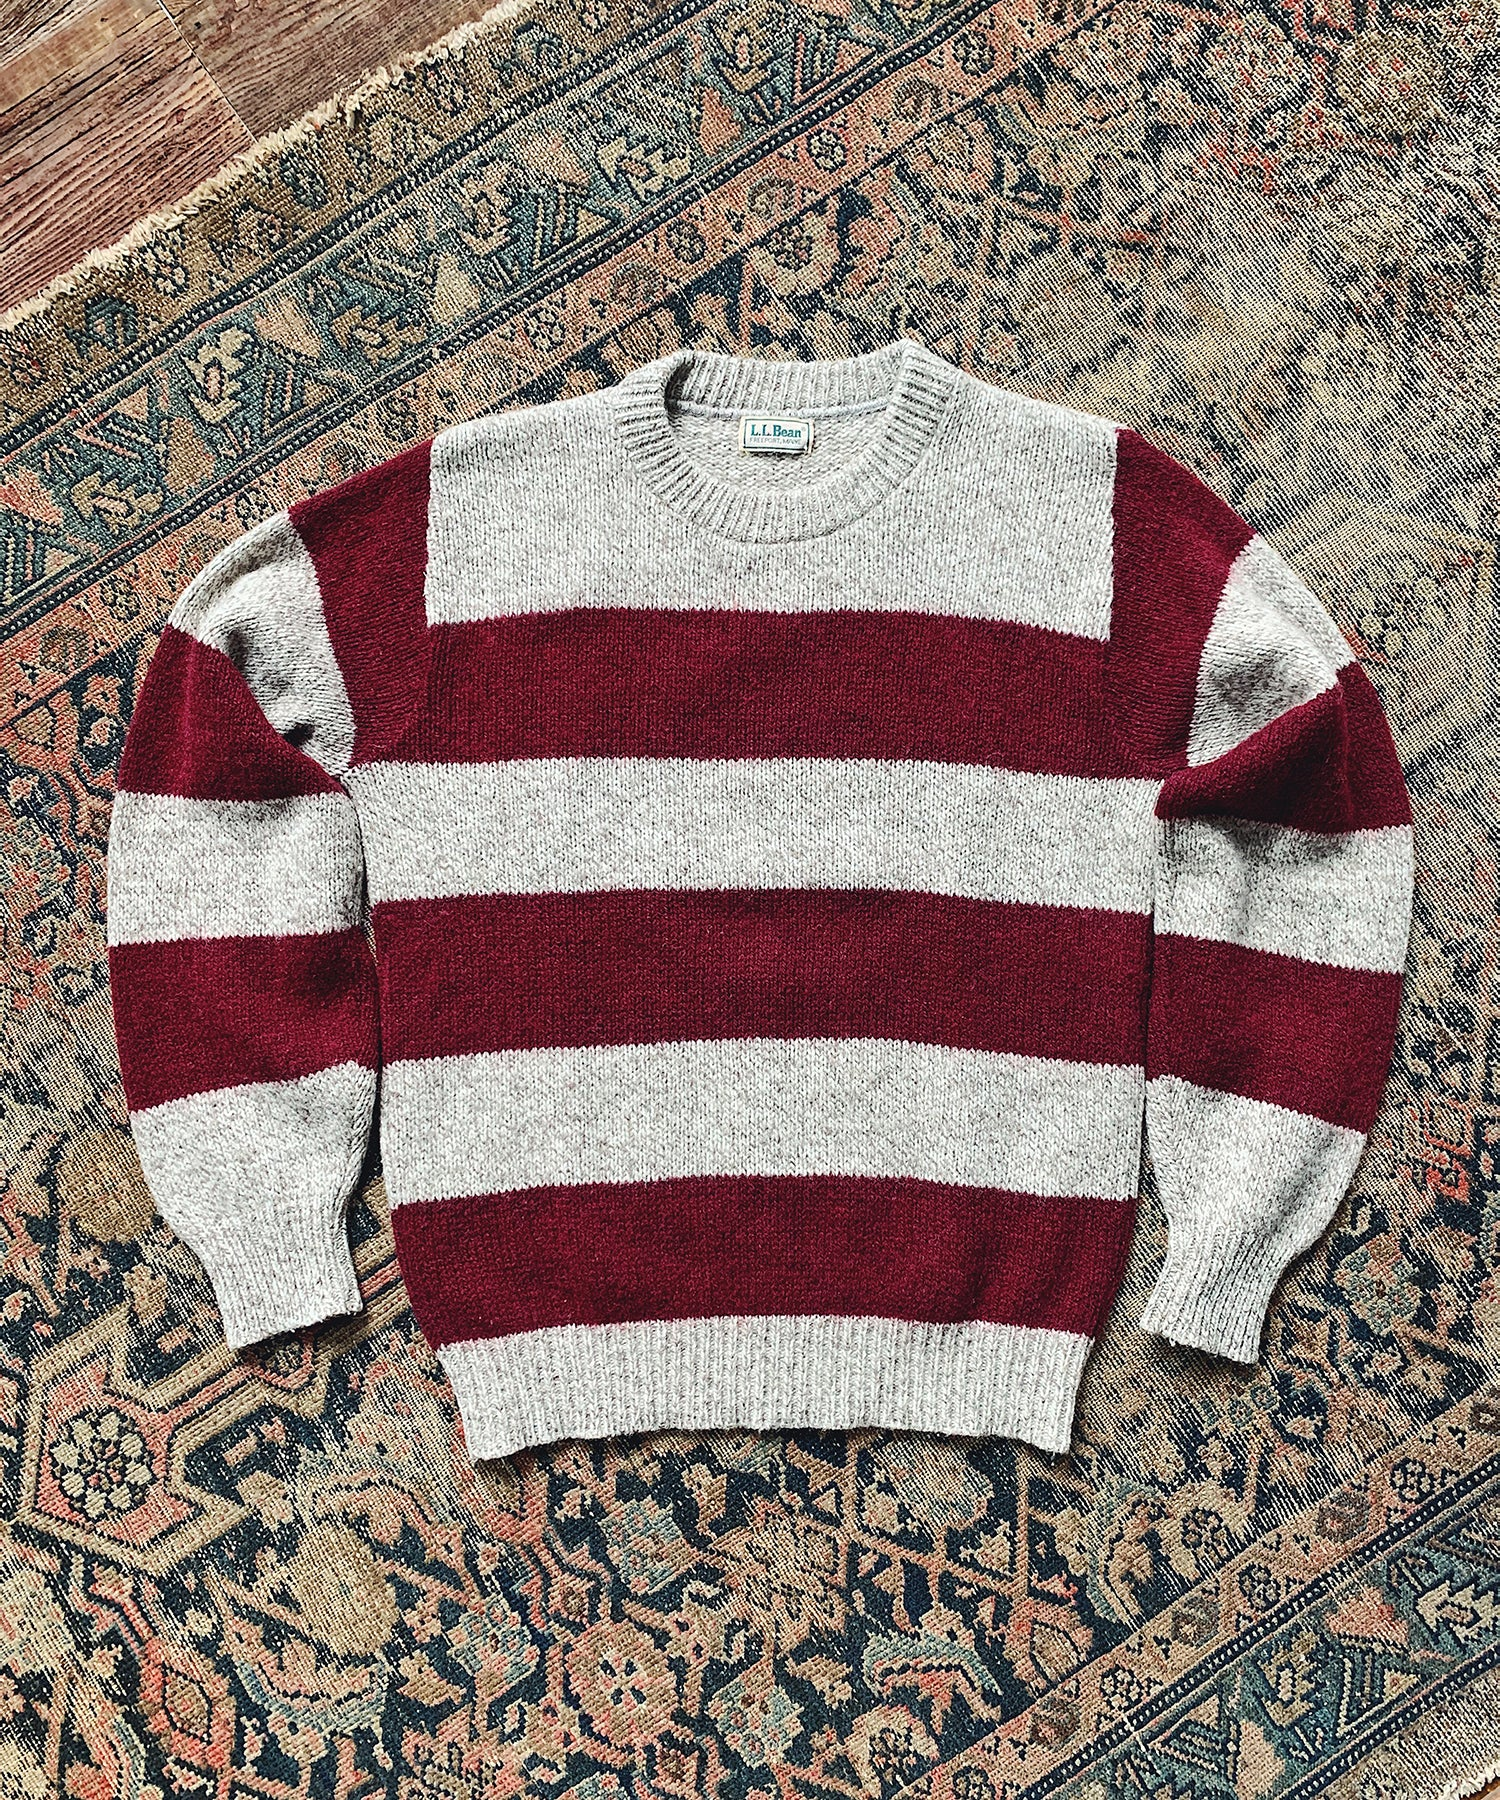 Item #15 - Todd Snyder x Wooden Sleepers 1980's Ragg Wool Sweater in Red & White Stripe - SOLD OUT